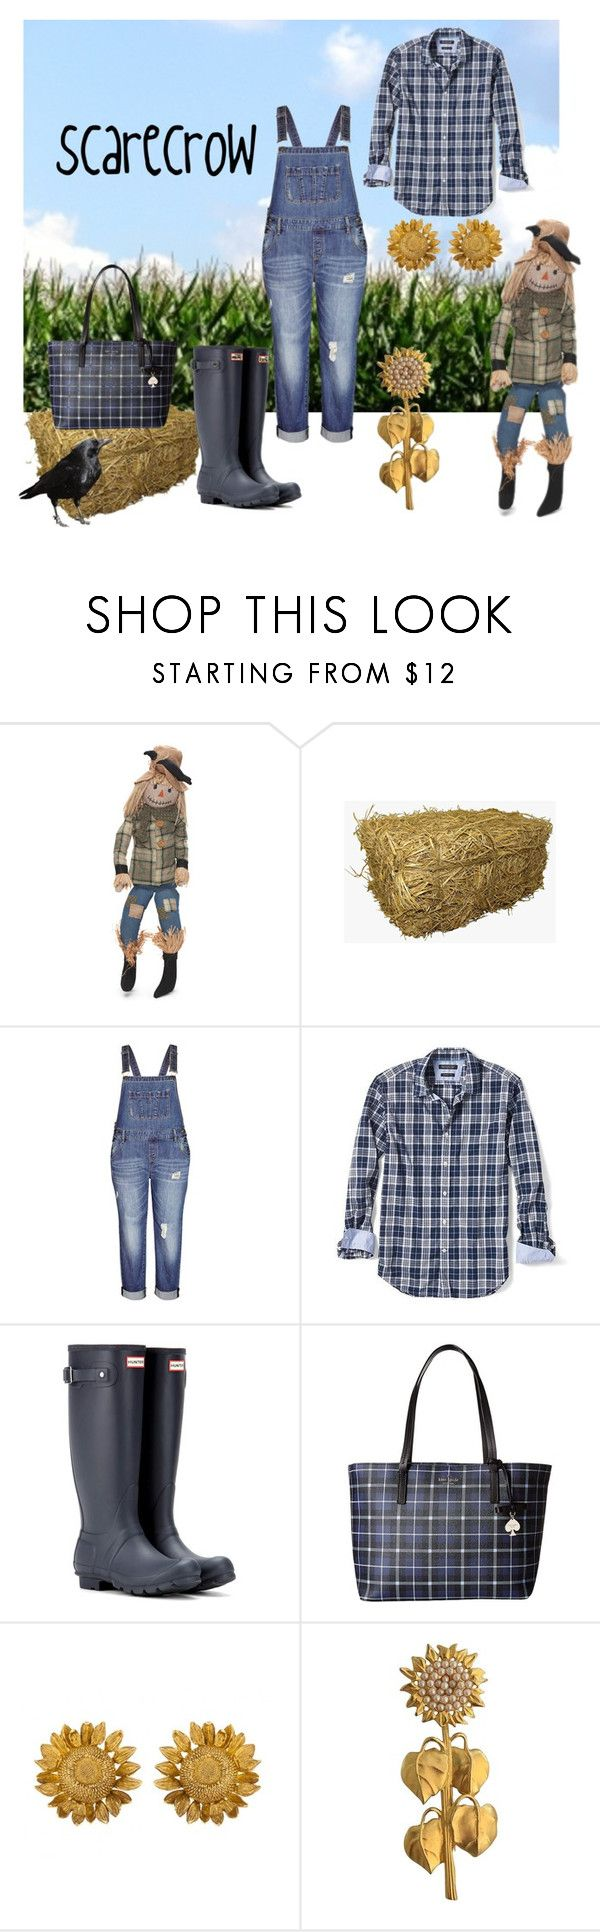 """""""Scarecrow"""" by wheredidyougetthat ❤ liked on Polyvore featuring City Chic, Banana Republic, Hunter, Kate Spade, Karl Lagerfeld, Fall, plaid and overalls"""